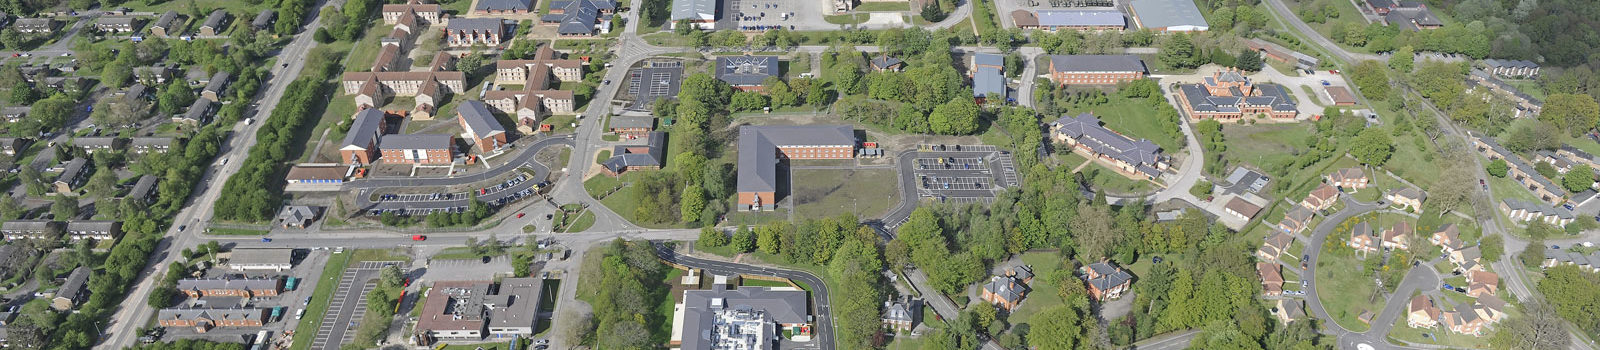 Aerial view of Garrison